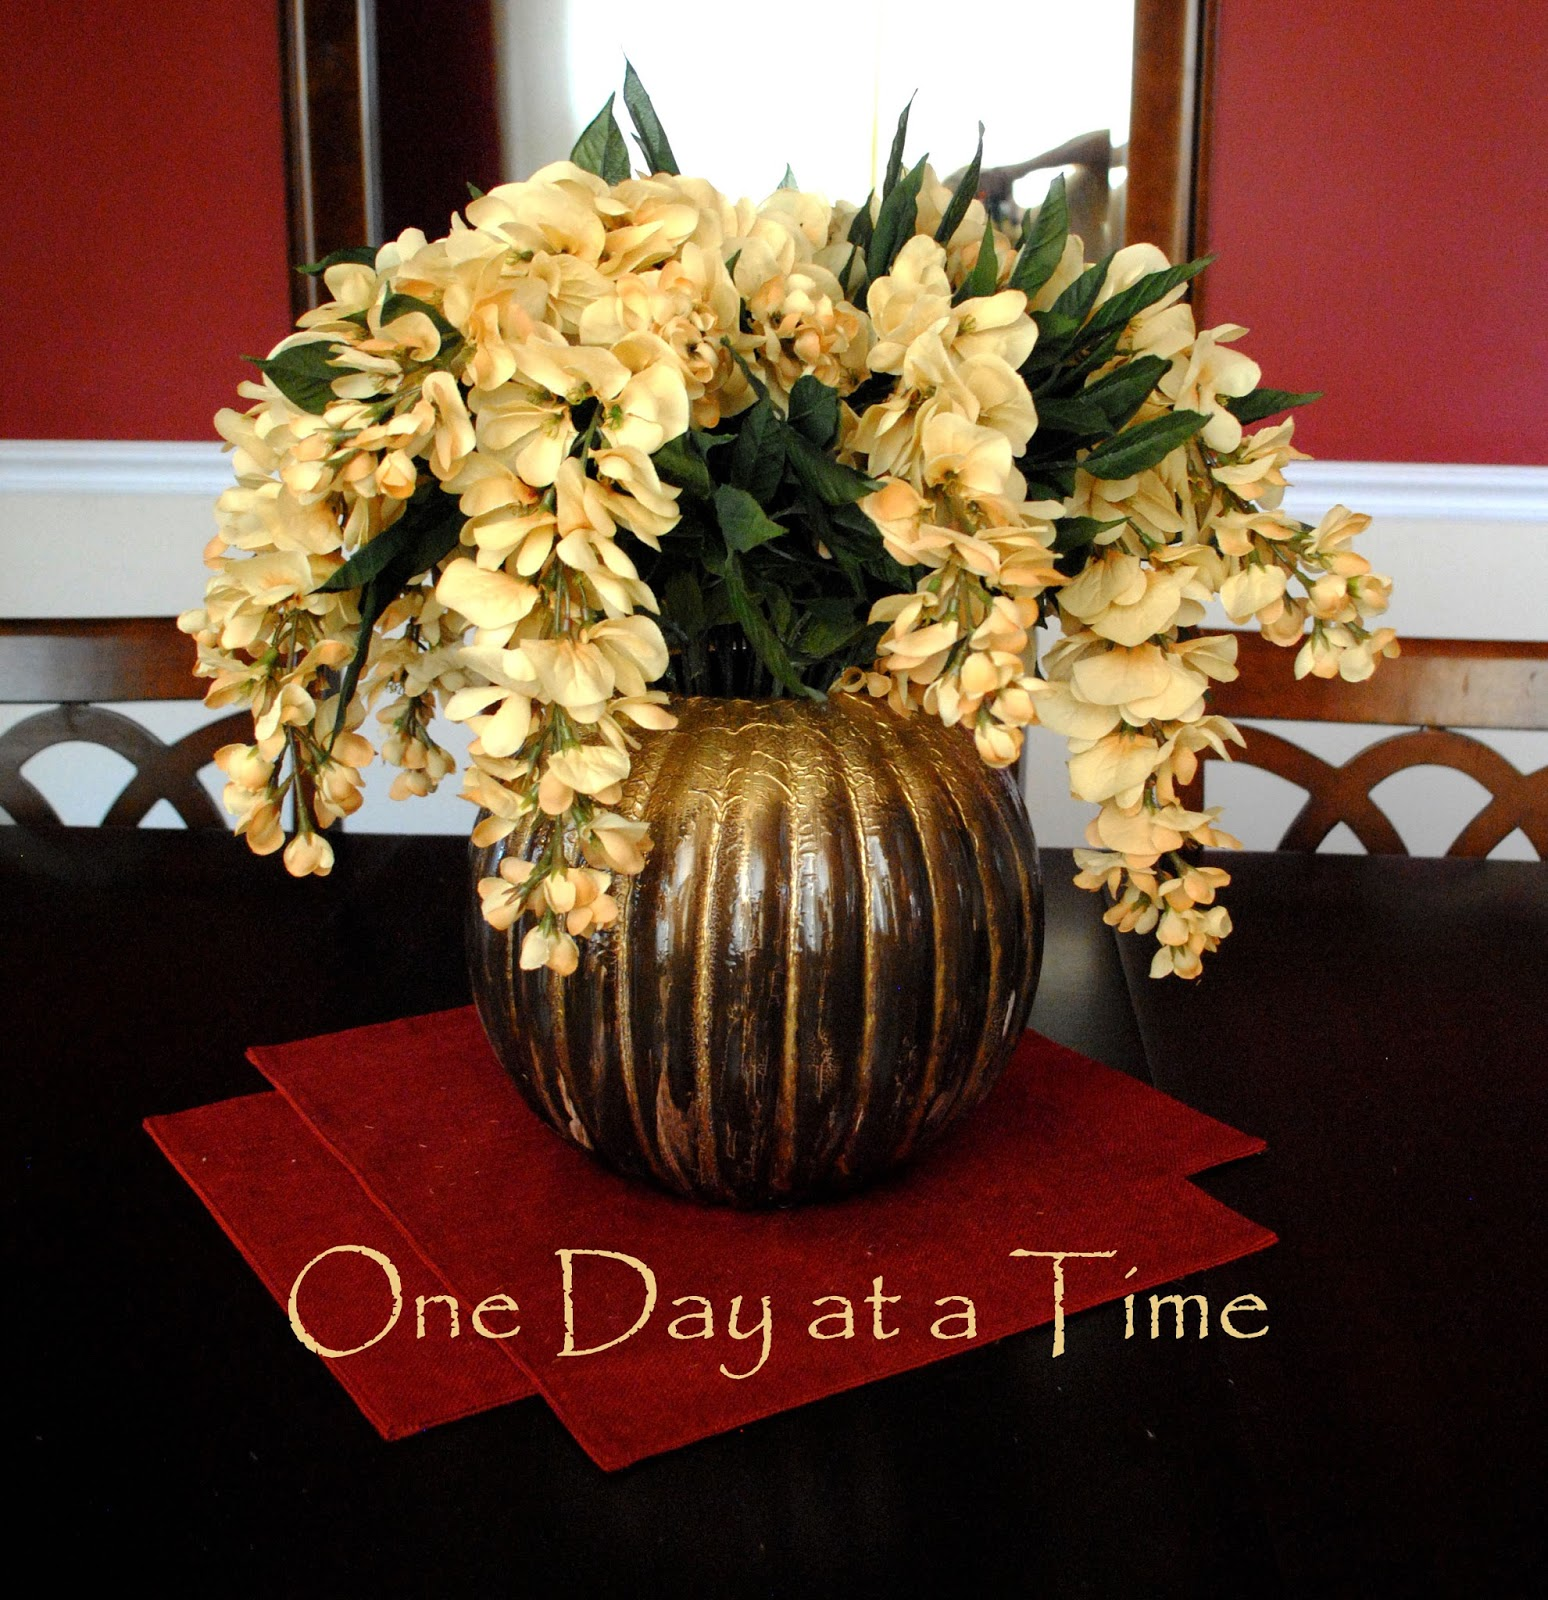 One day at a time peir 1 import knock off vase reviewsmspy